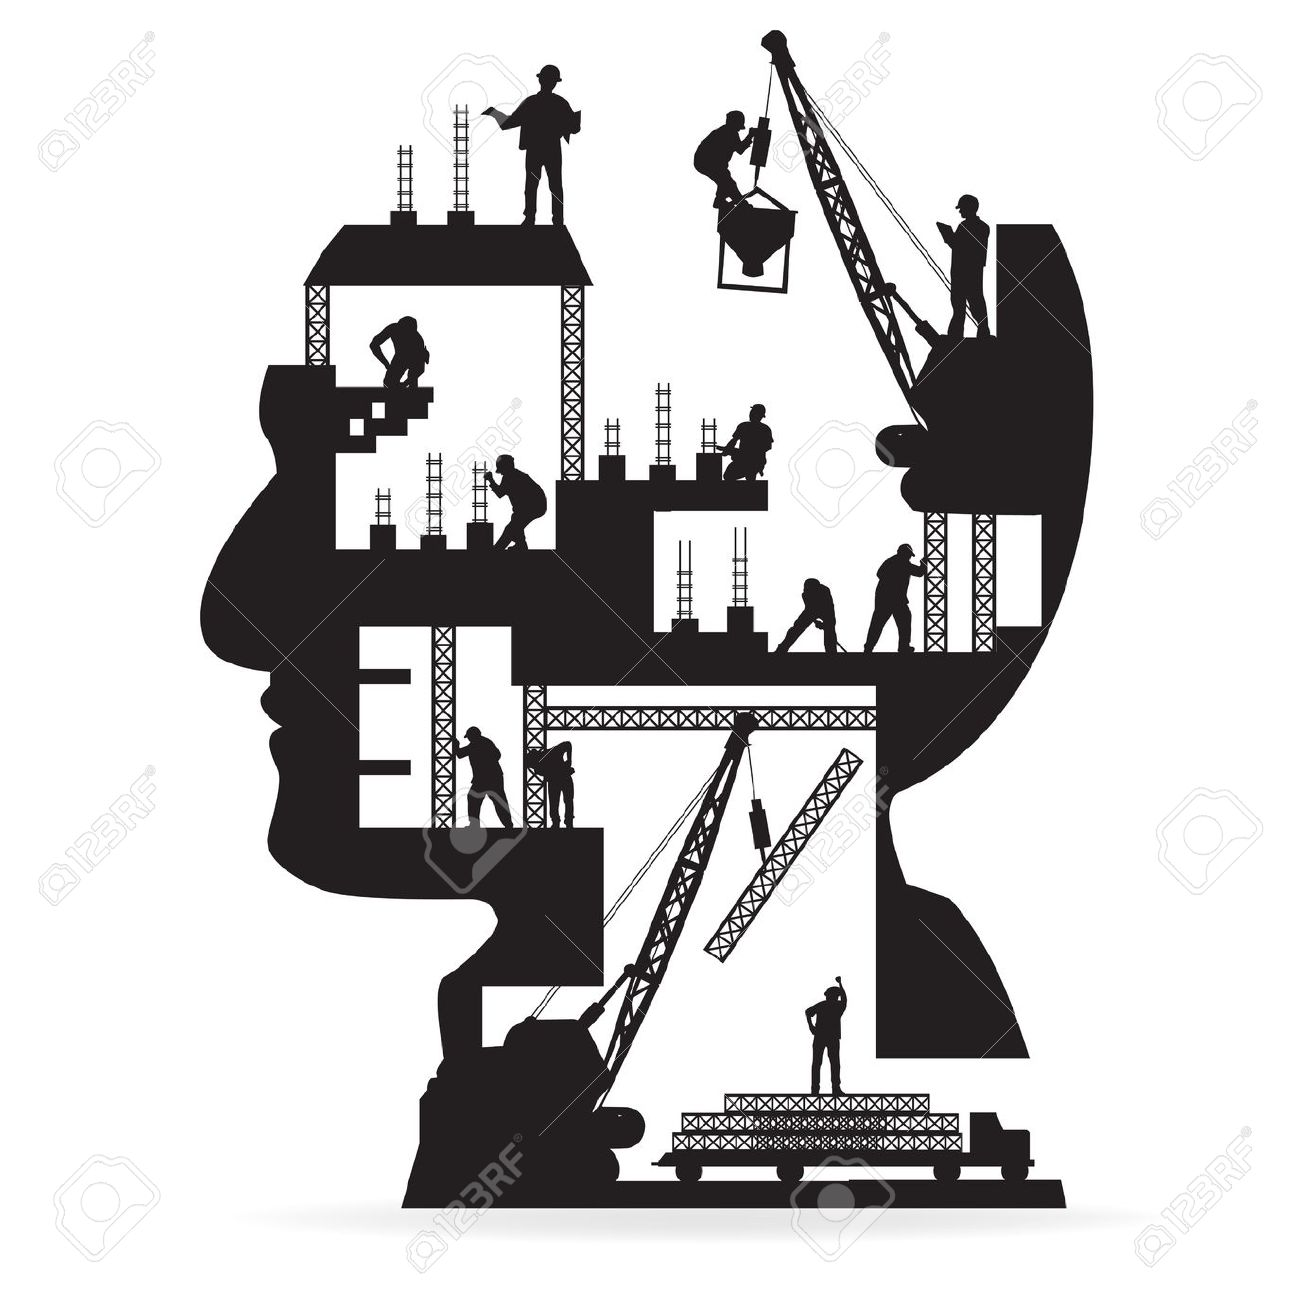 Civil Engineering Silhouette Clipart, Free Download Clipart and.